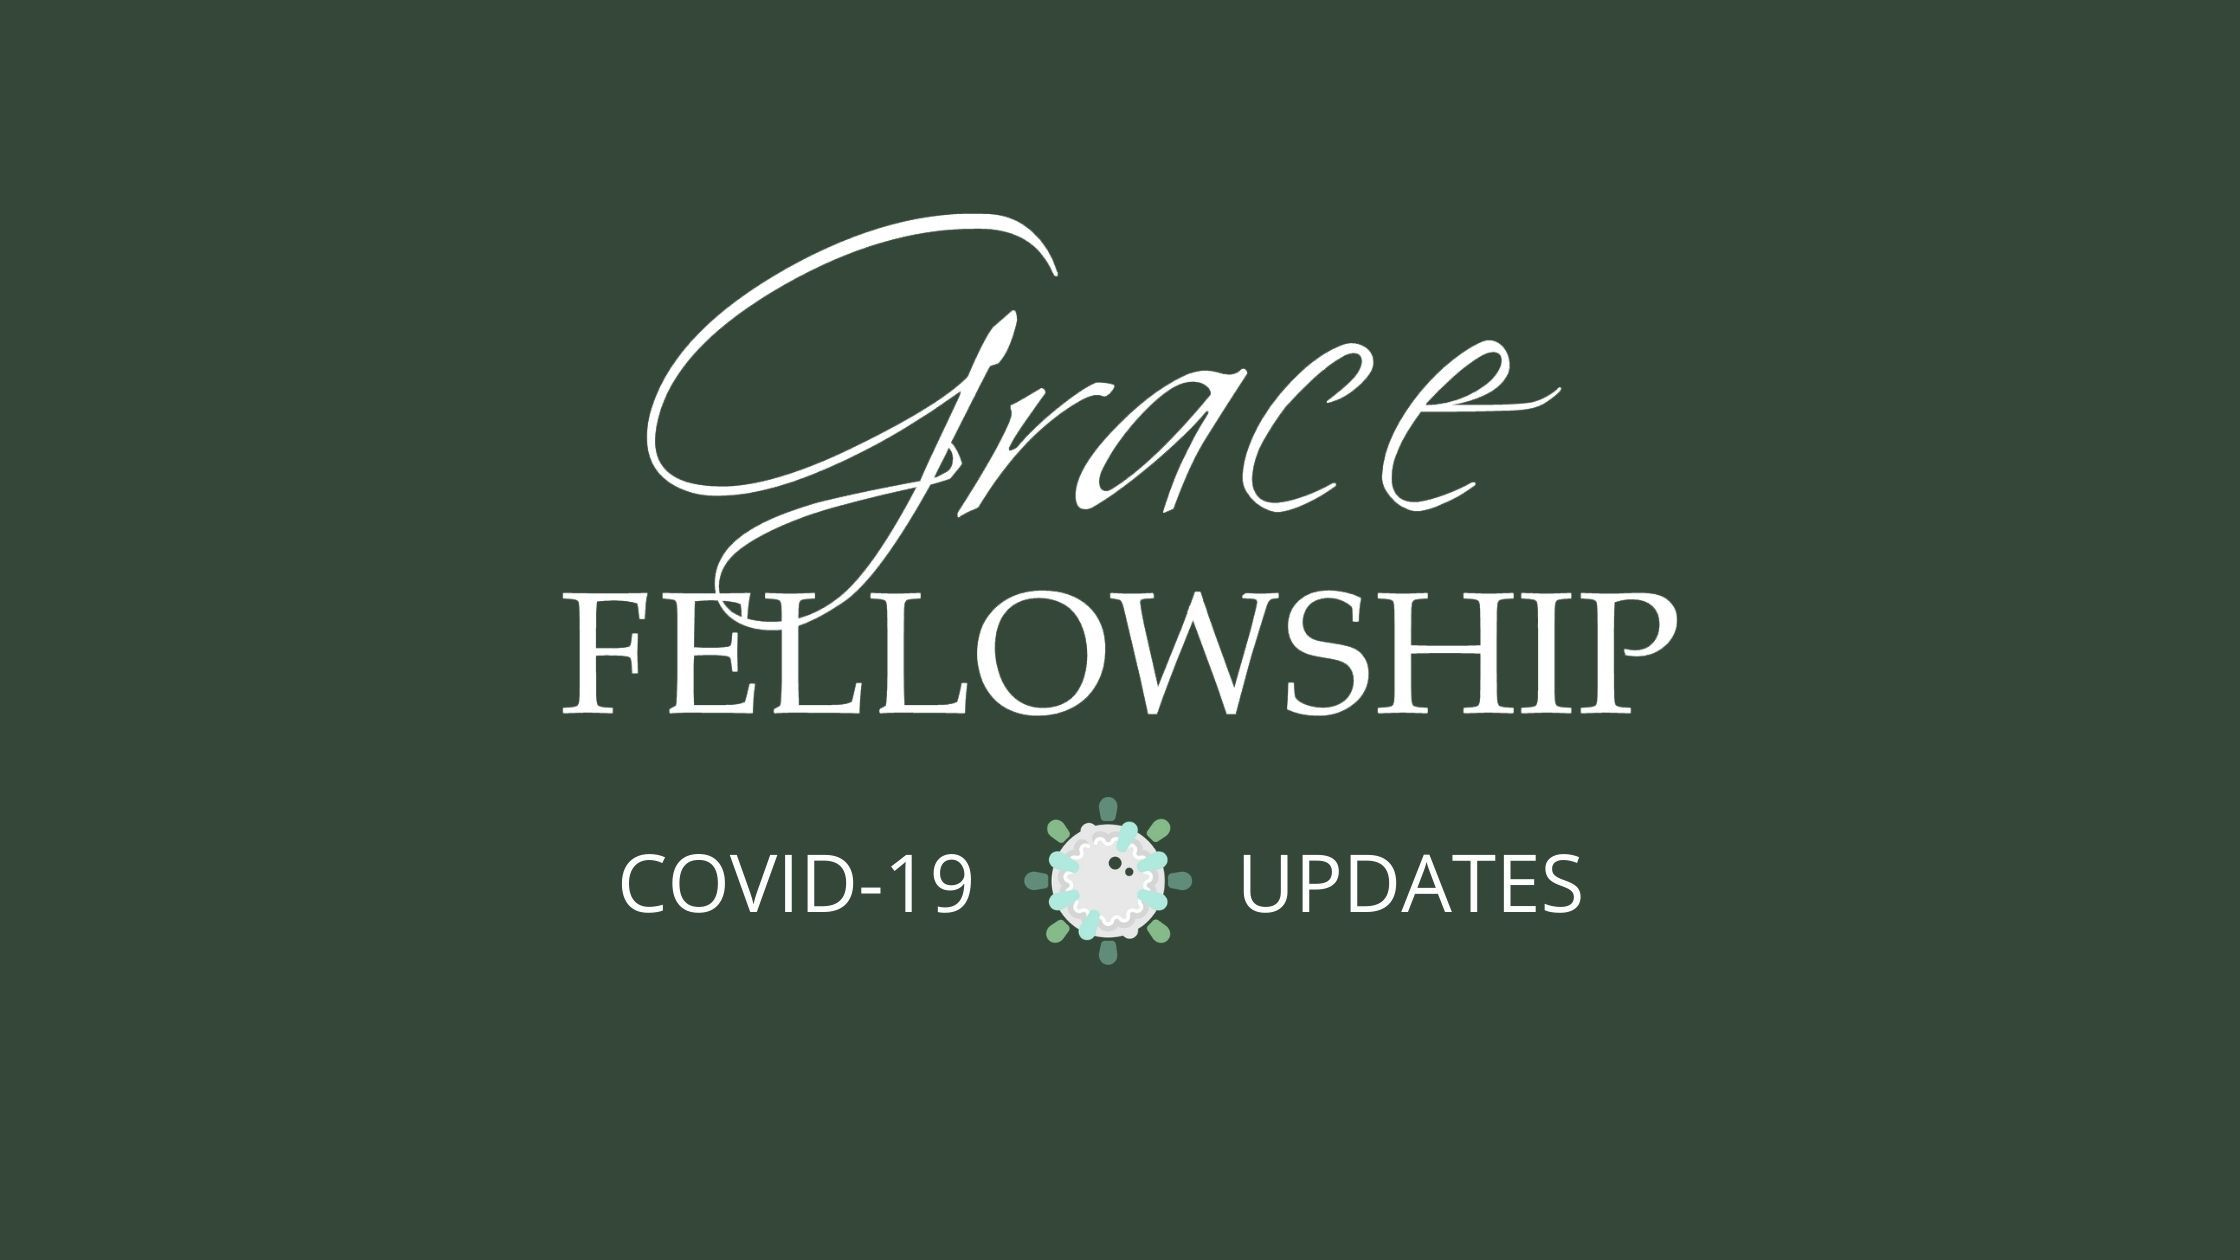 COVID-19 Update: May 10, 2020 — Phase 1 for Coming Back to Worship